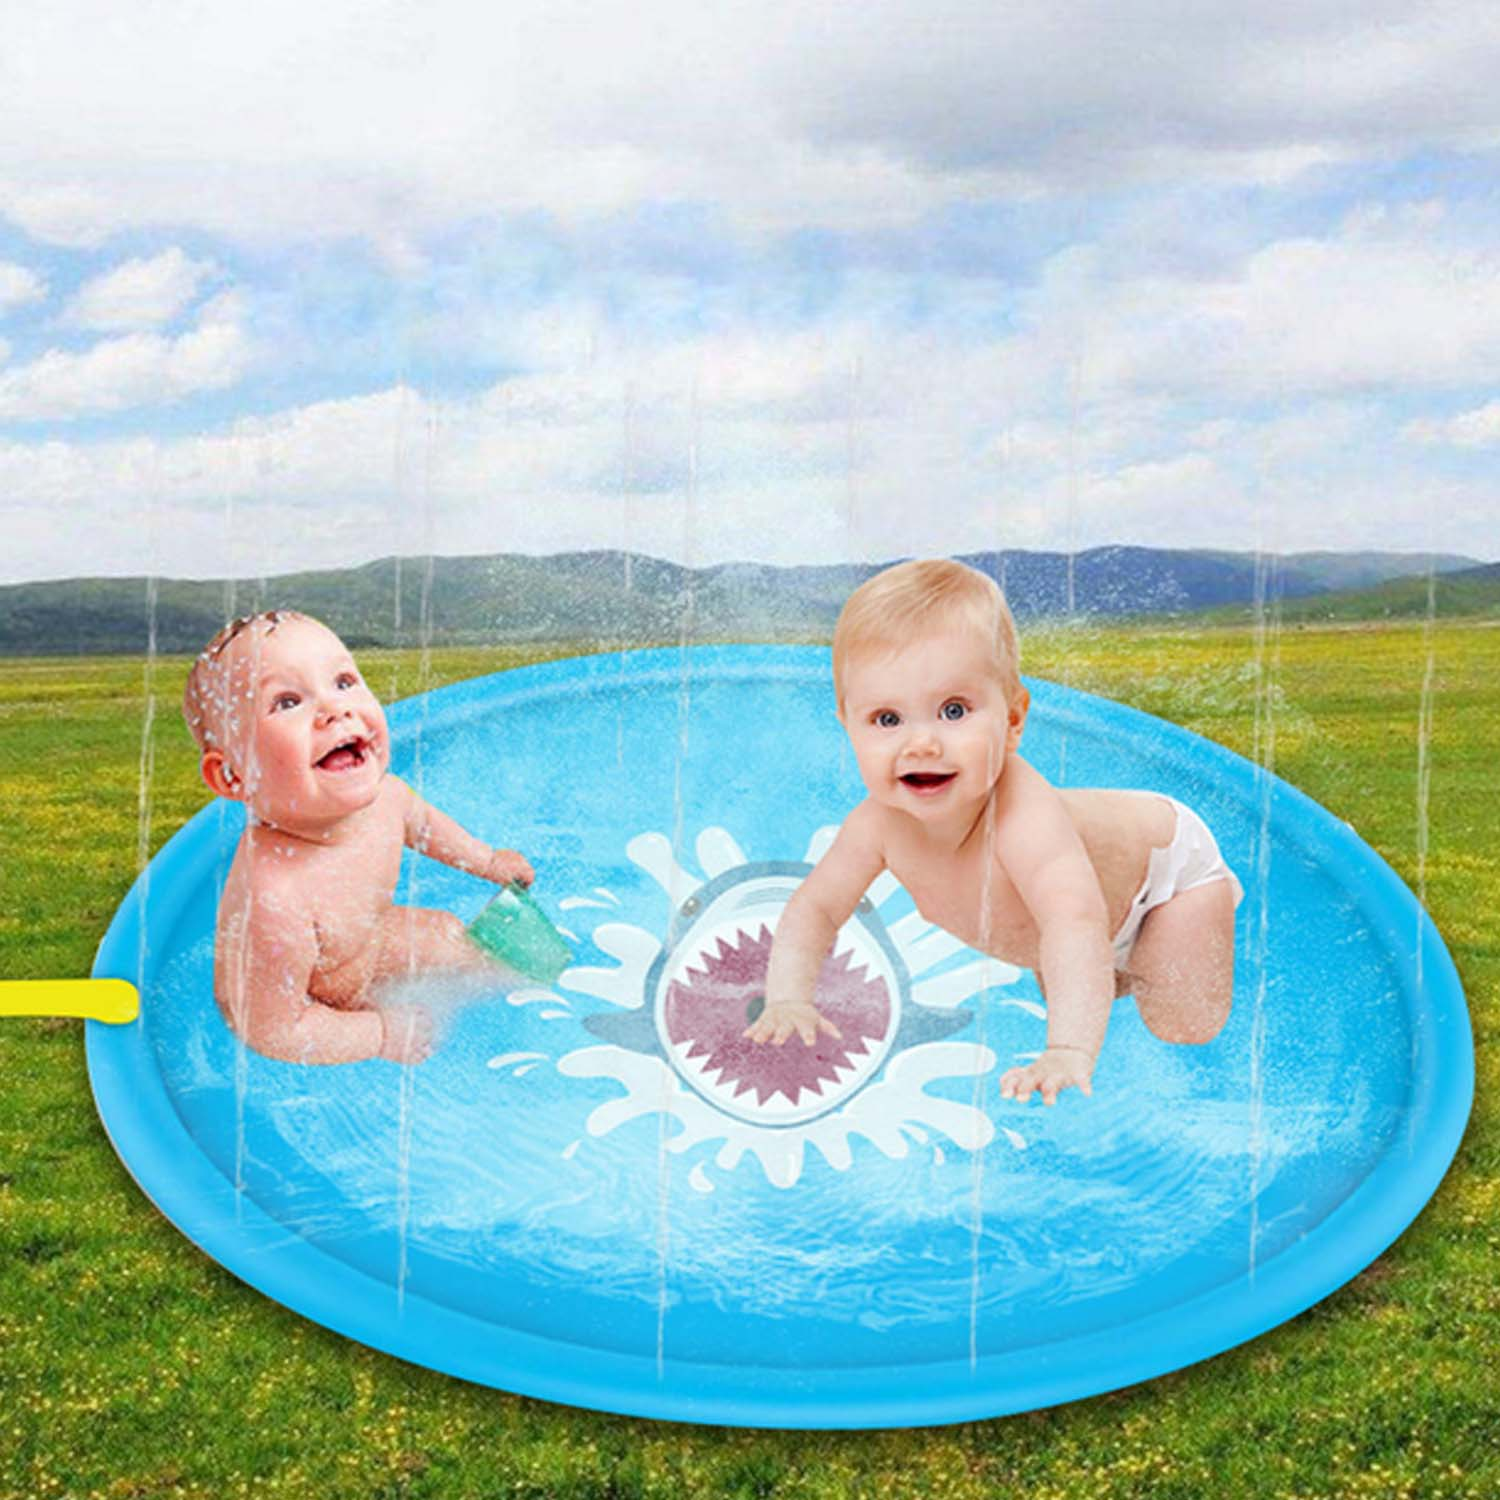 Besegad 100cm Inflatable Water Splash Sprinkle Play Mat Summer Outdoor Sprinkler Water Game Toy For Children Kids Water Play Mat